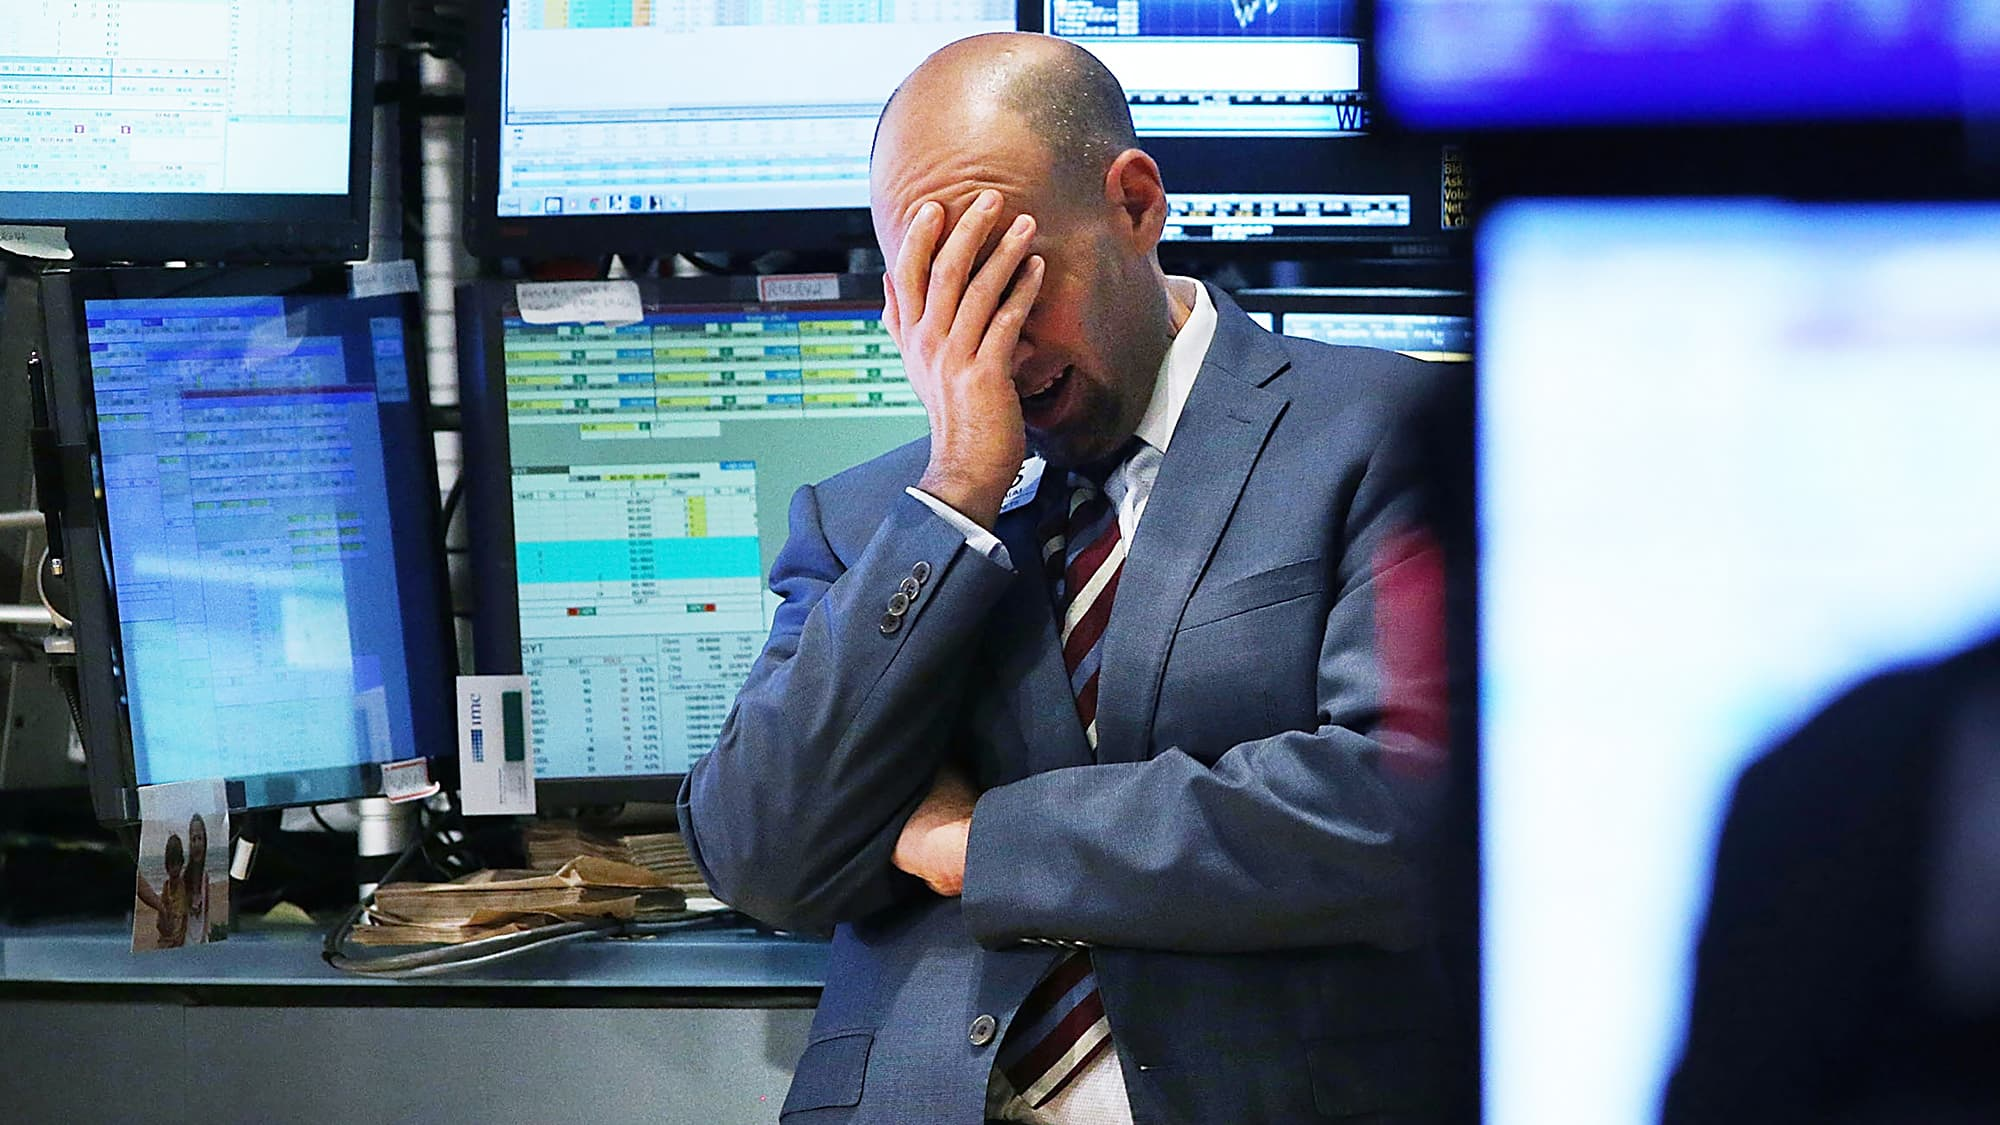 Markets Cnbc Explains How Do Circuit Breakers Work In The Stock